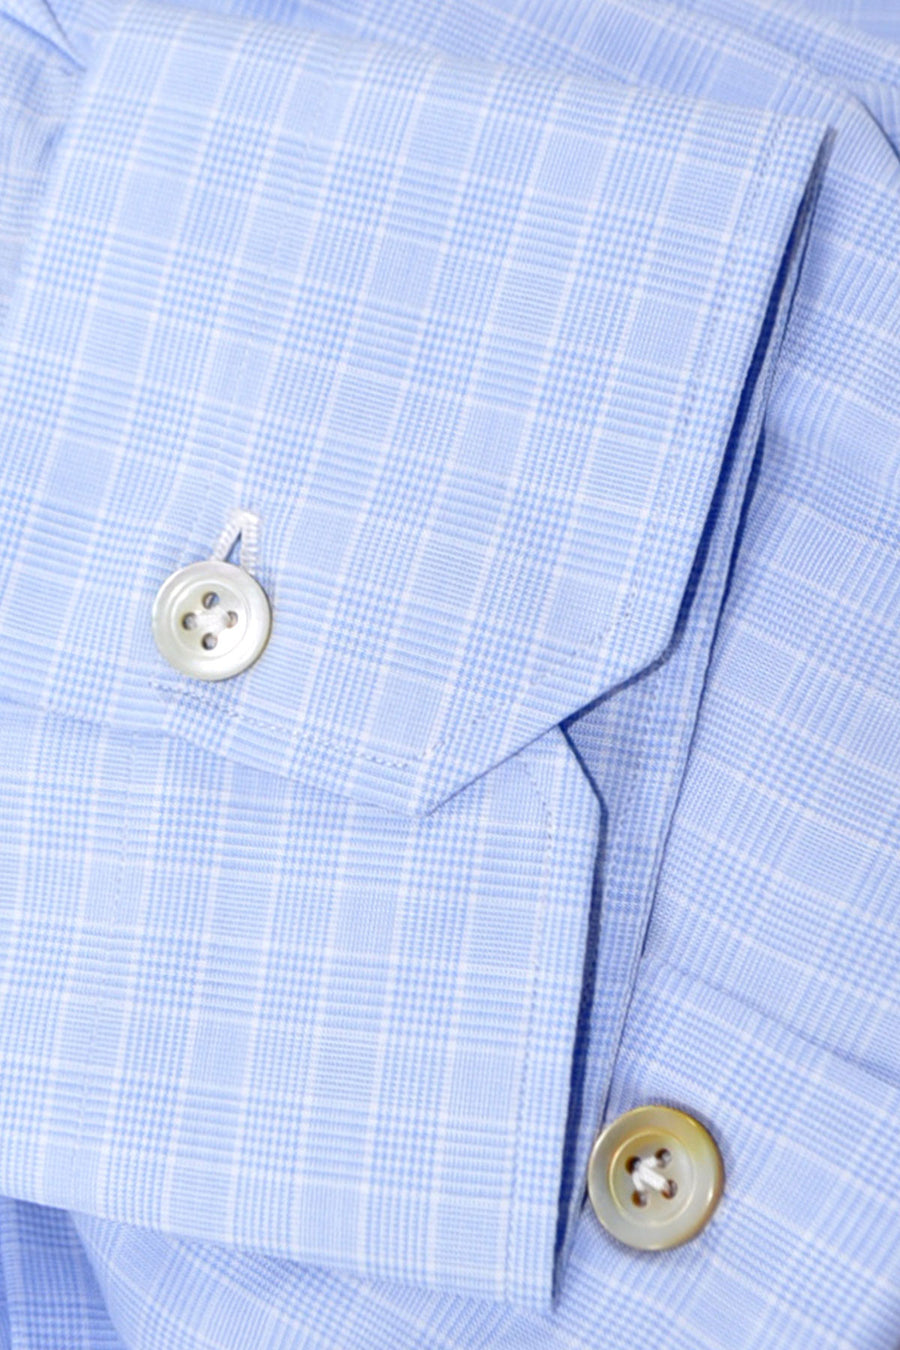 Kiton Dress Shirt Blue White Check 45 - 18 SALE